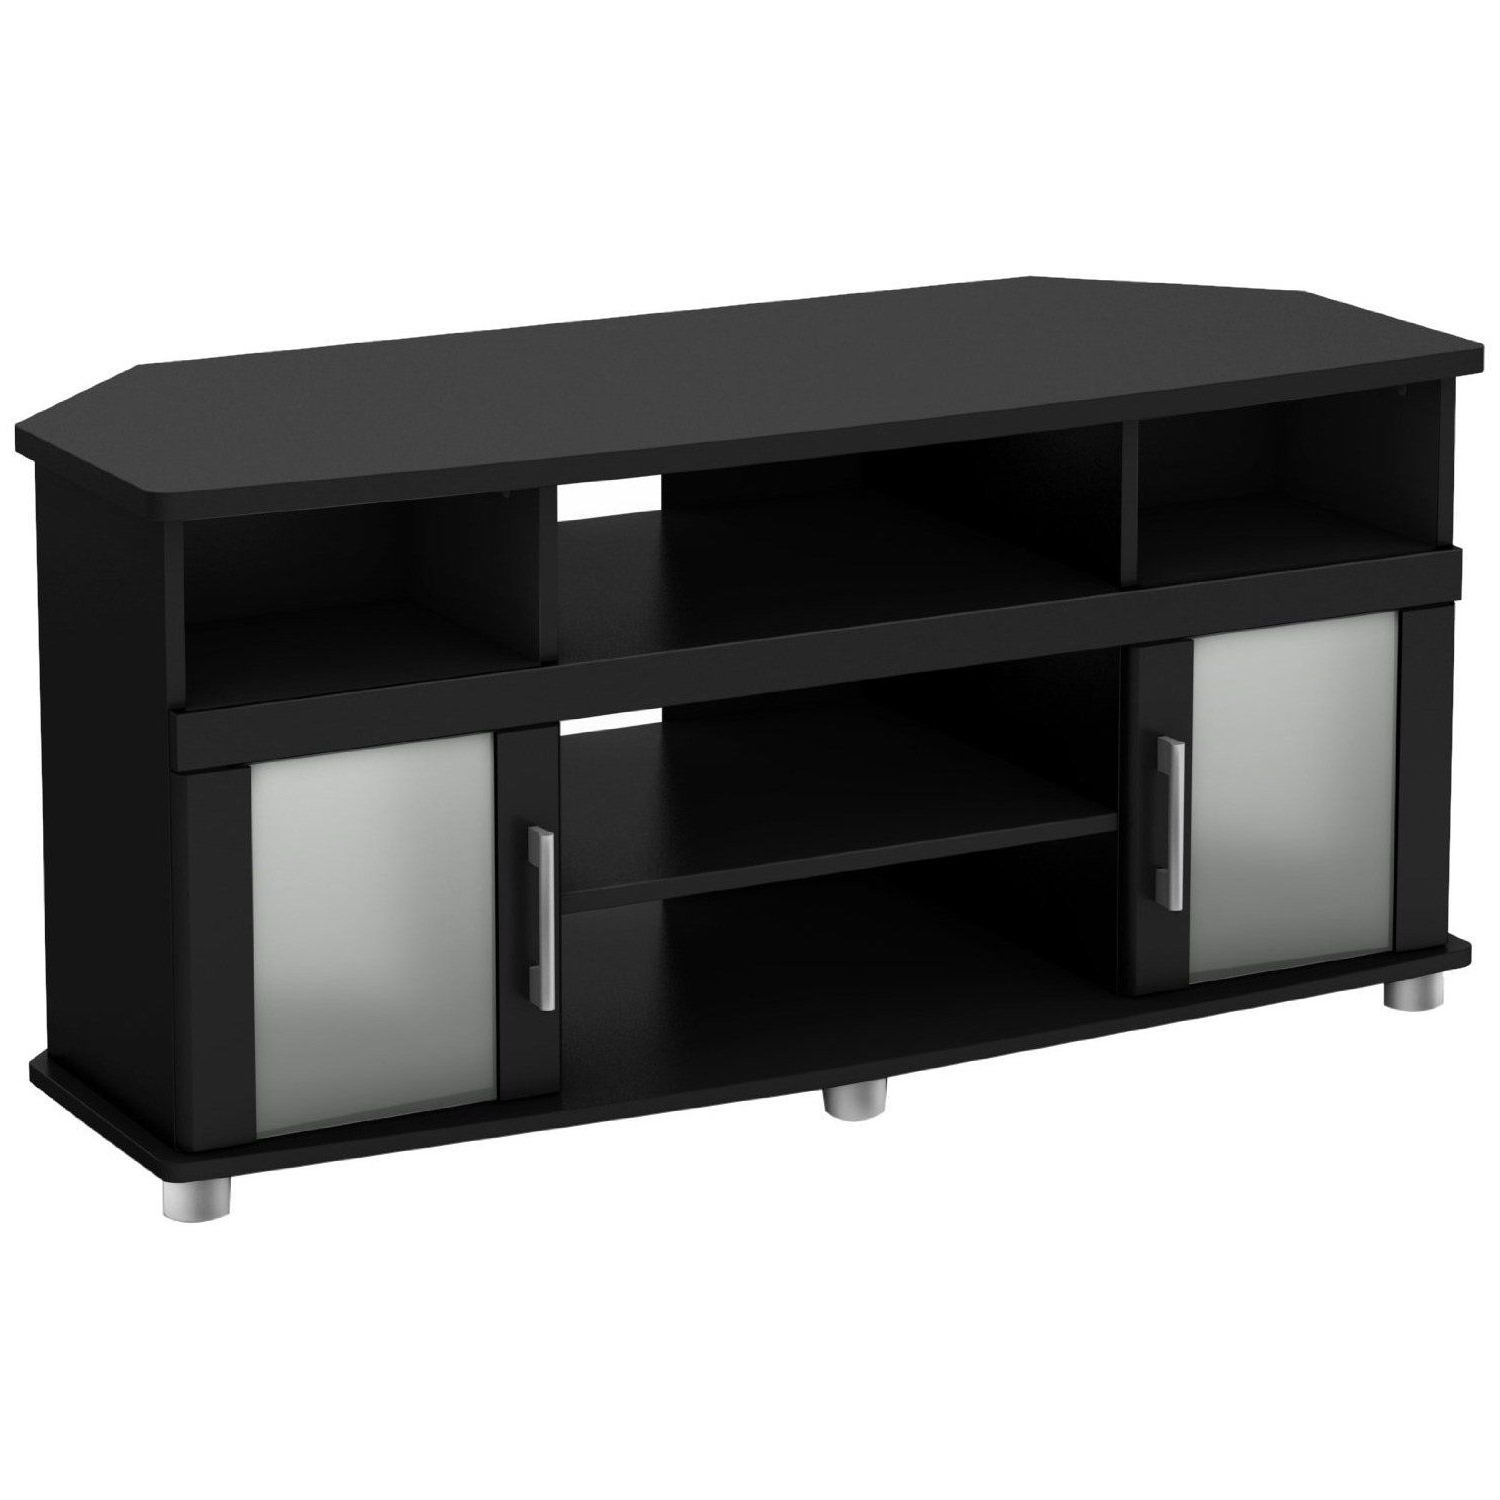 Most Up To Date Corner Tv Cabinets With Glass Doors In Black Corner Tv Stand With Frosted Glass Doors (View 13 of 20)